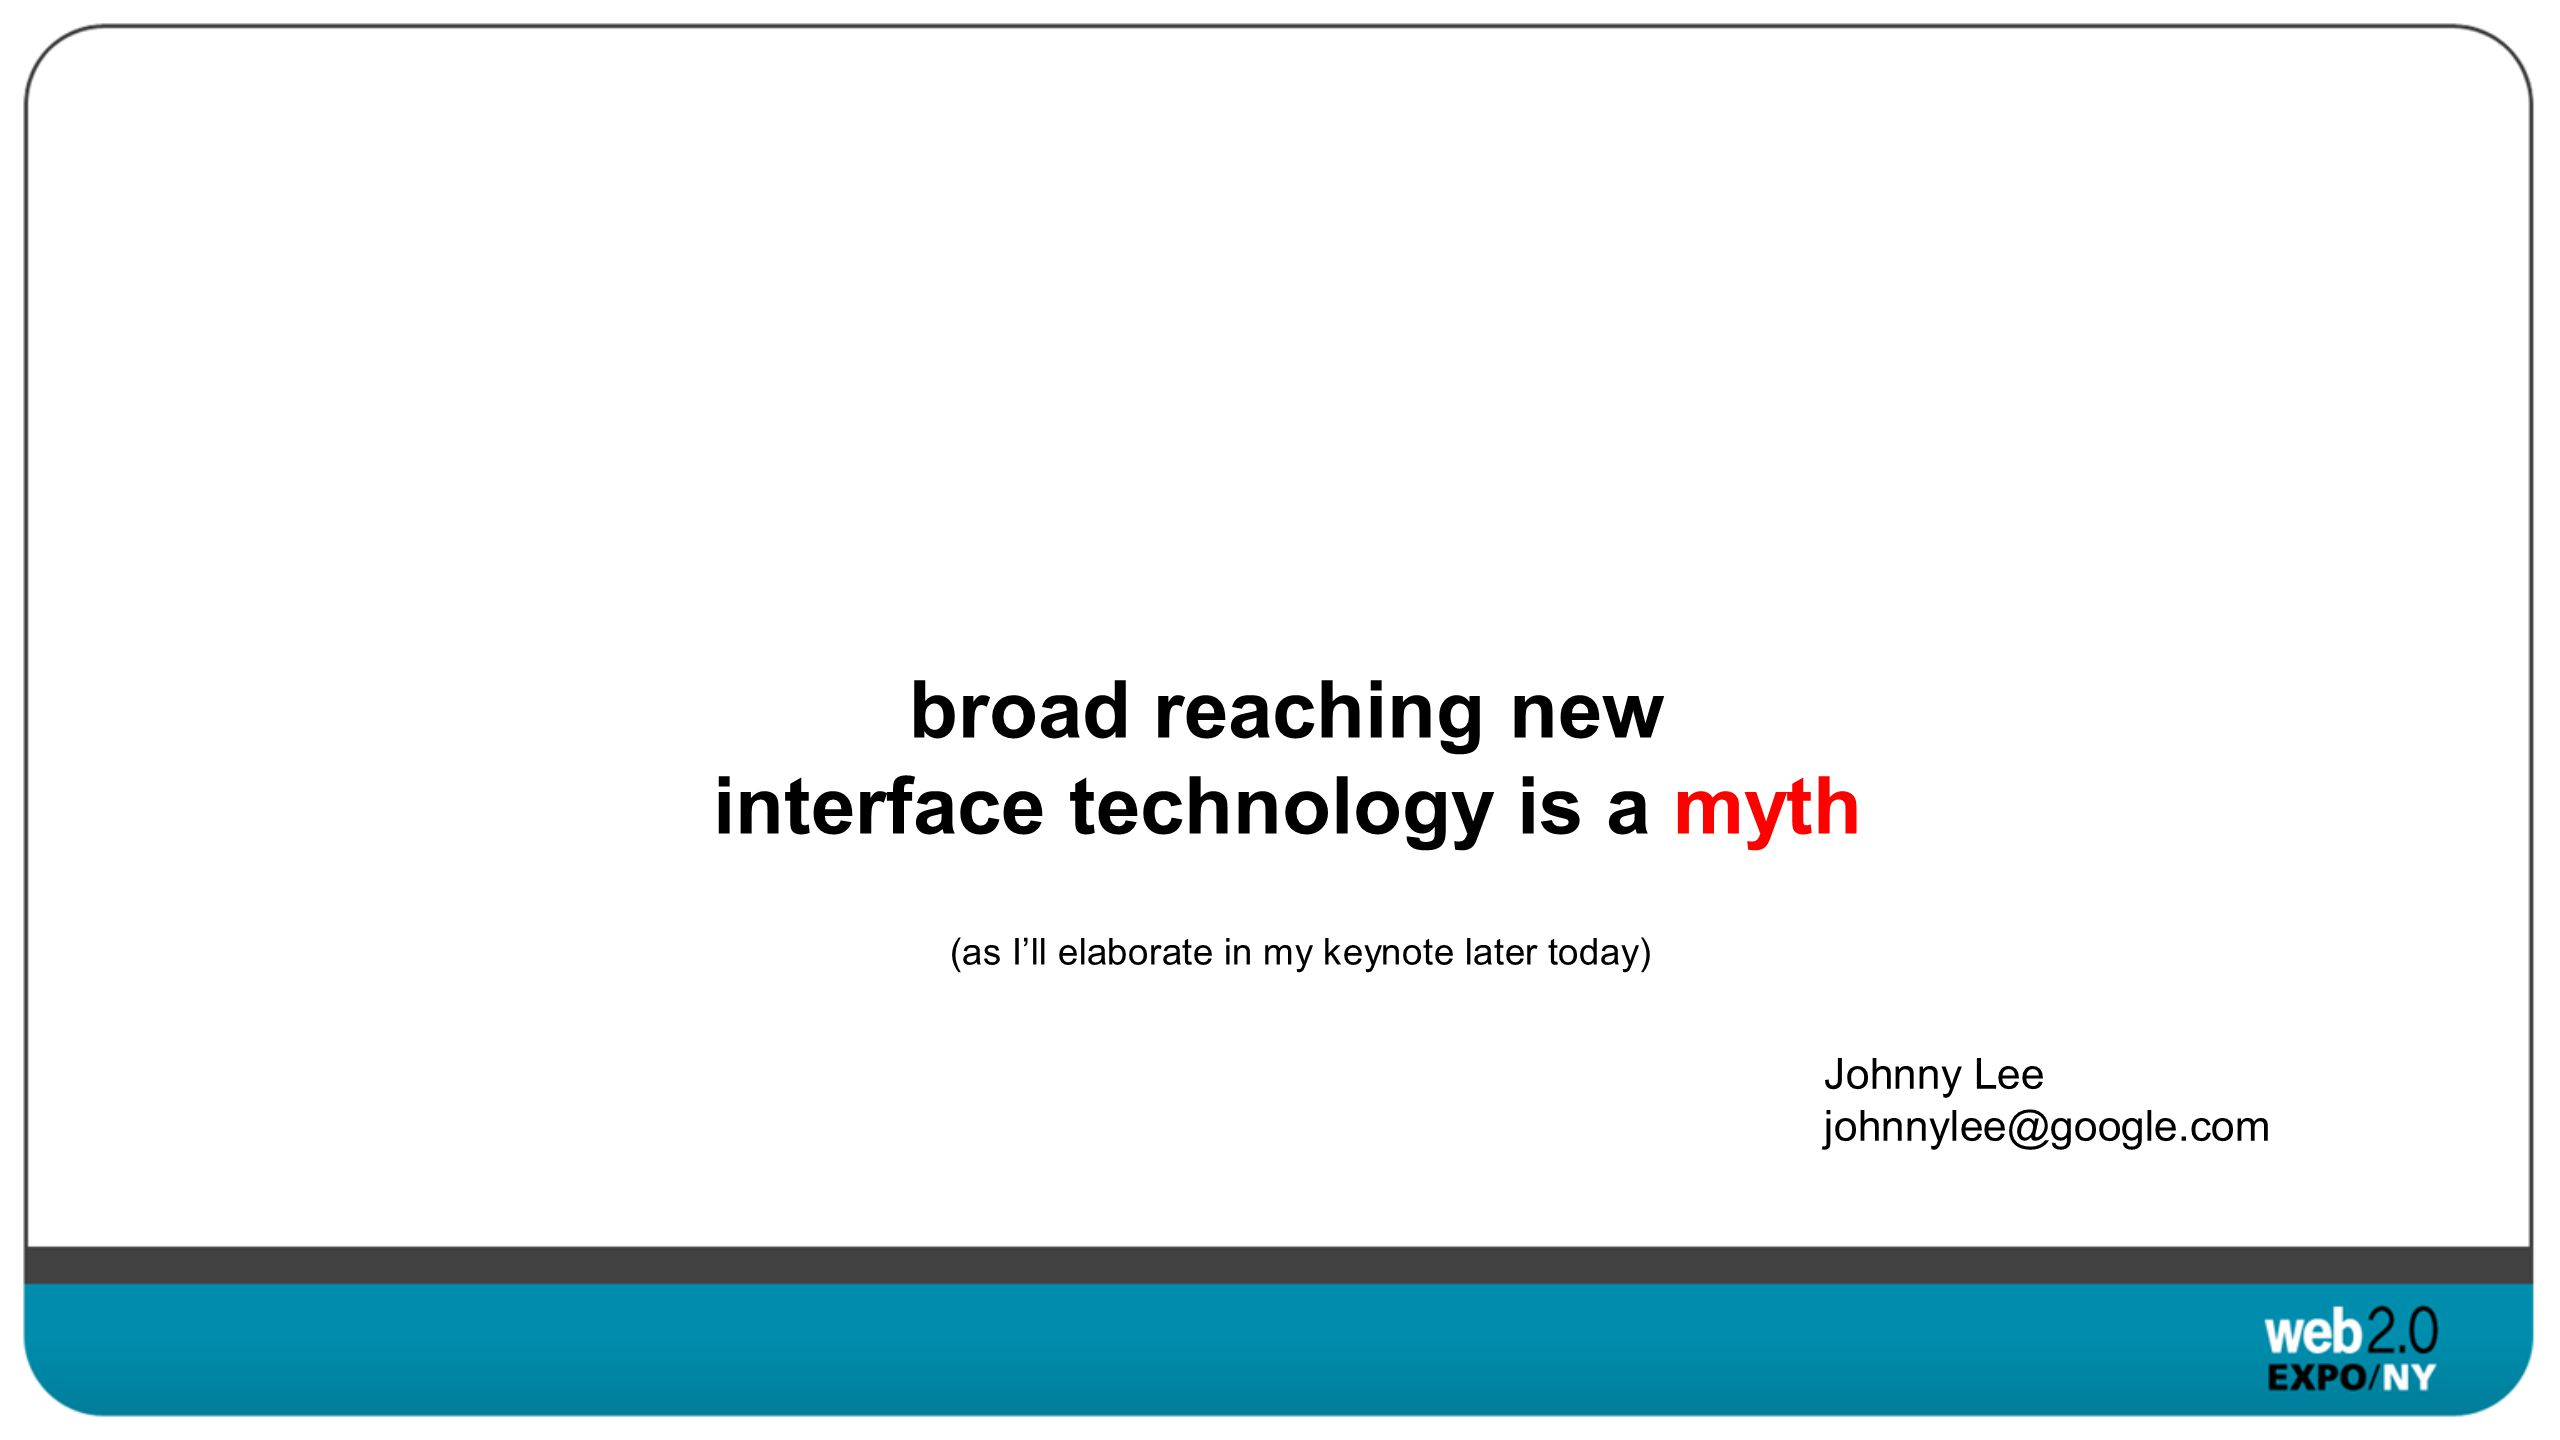 broad reaching new interface technology is a myth Johnny Lee johnnylee@google.com (as Ill elaborate in my keynote later today)